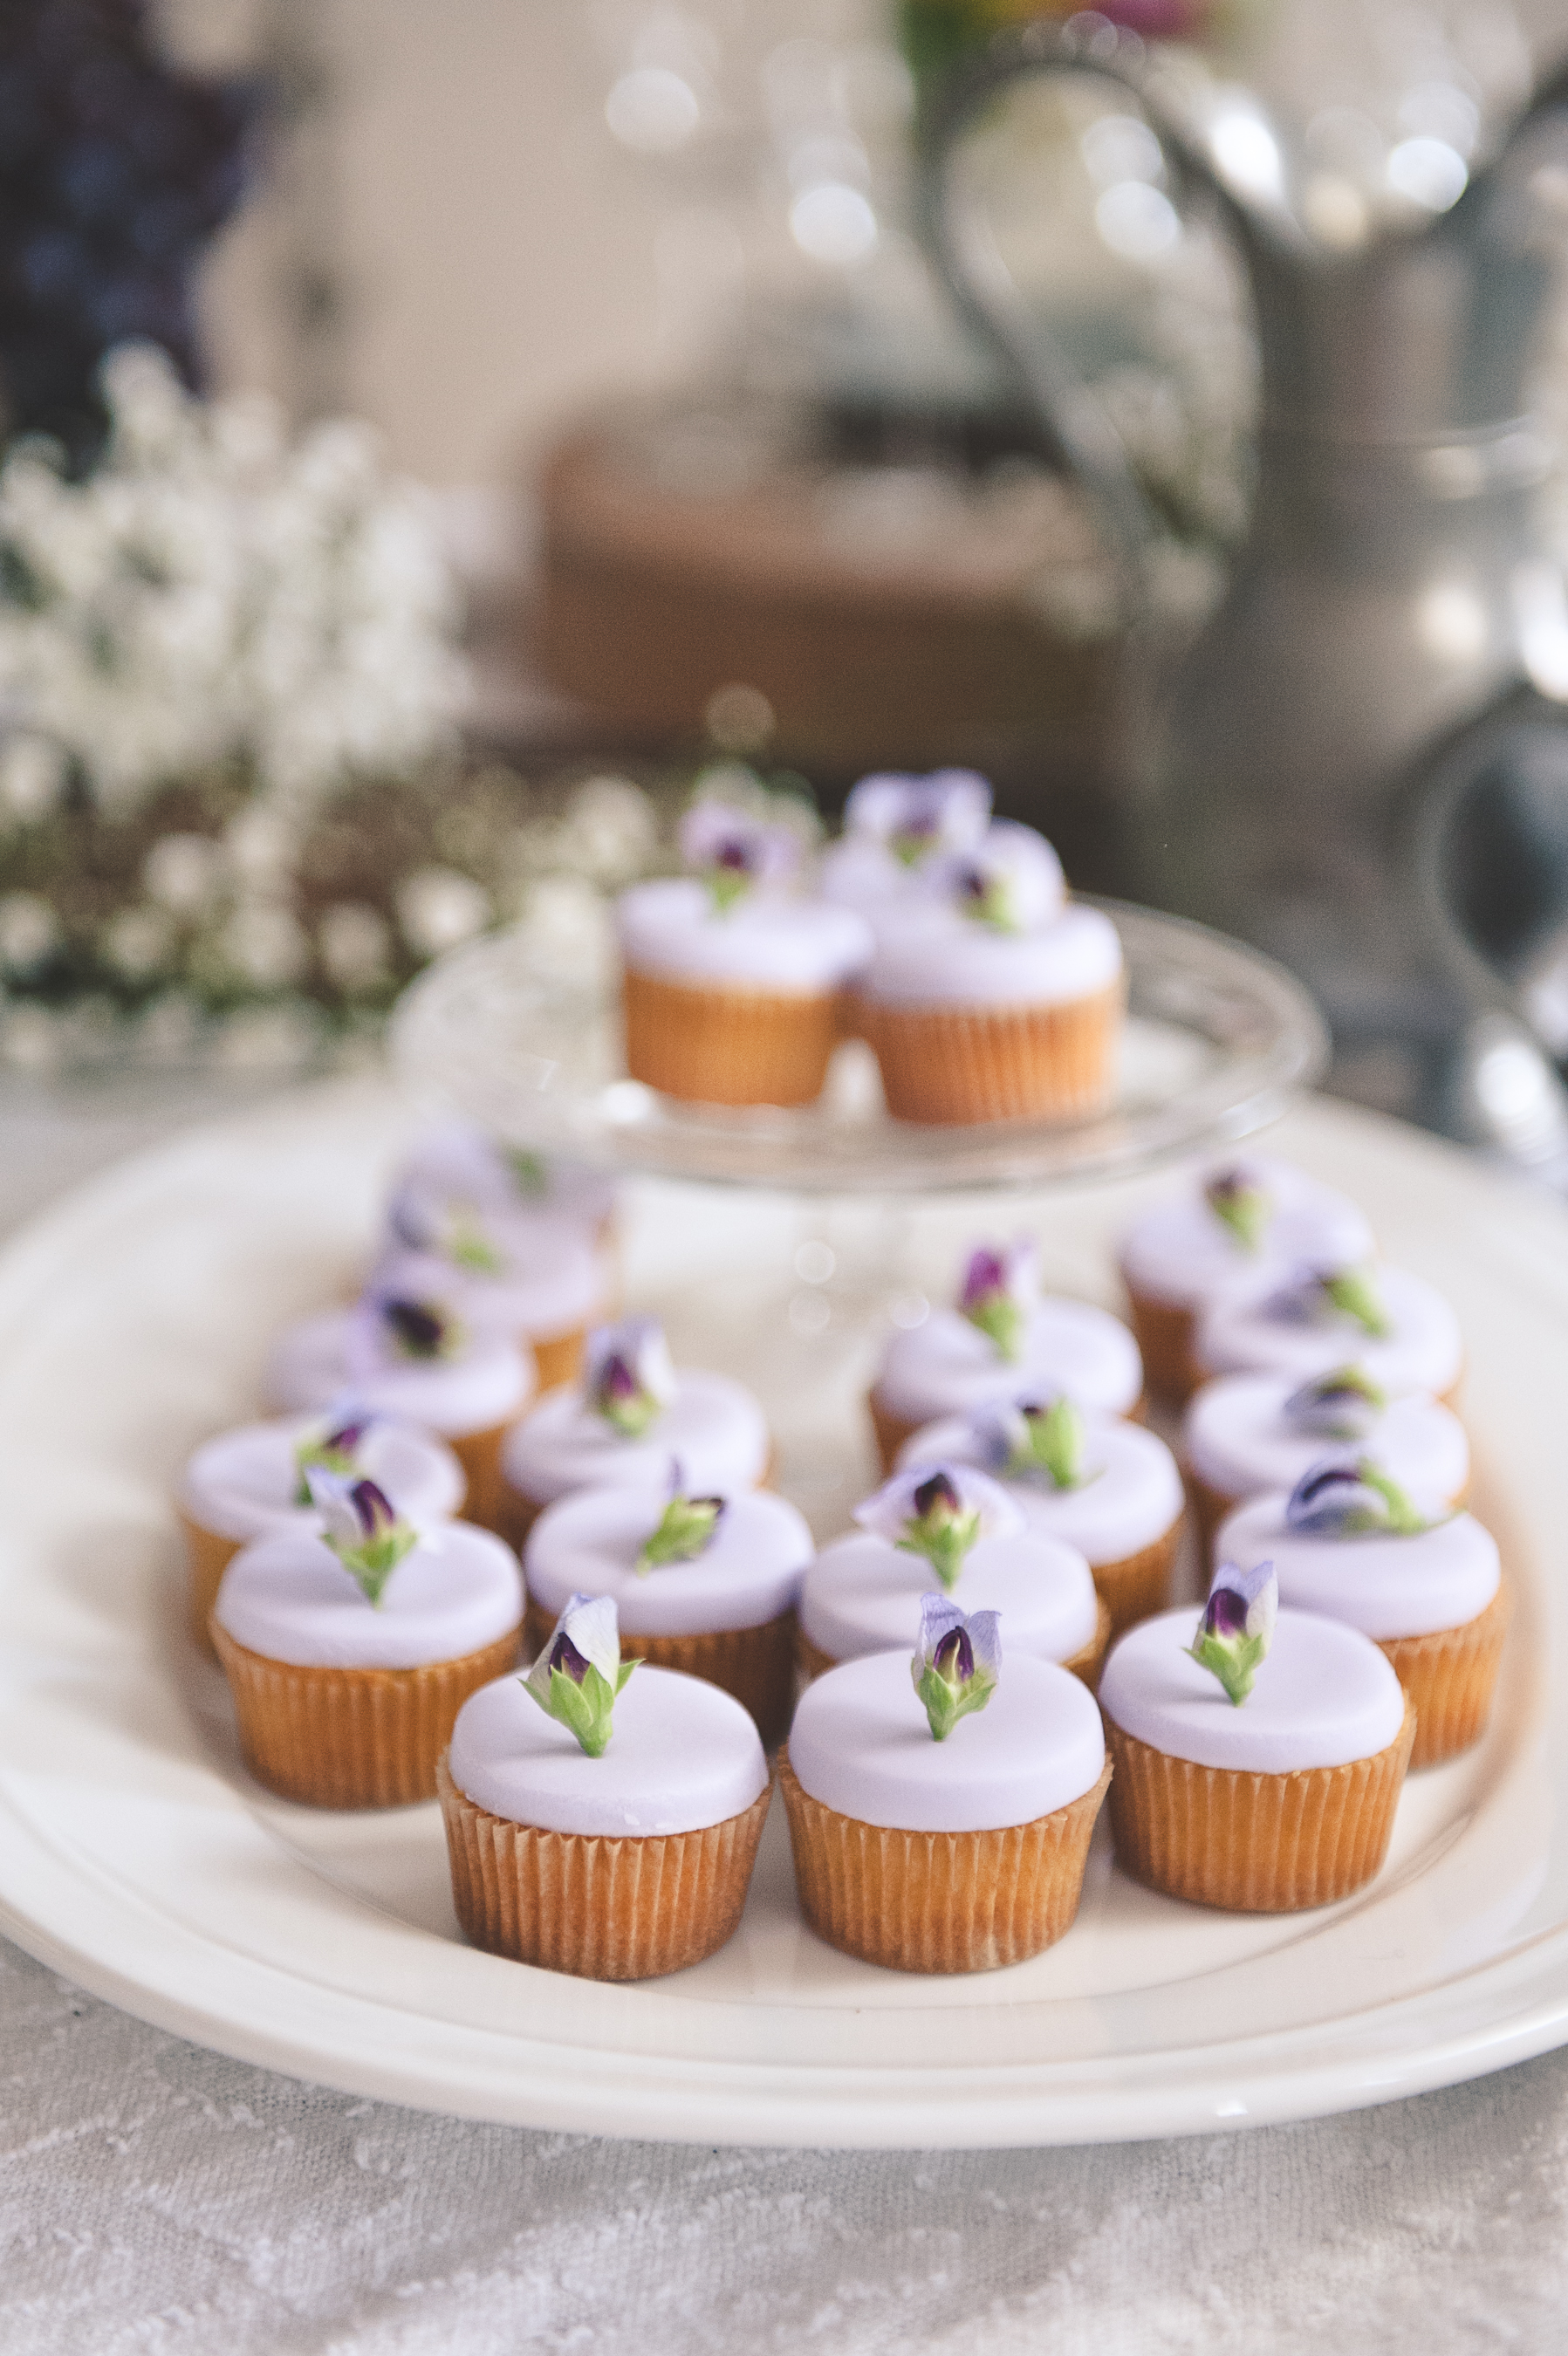 cupcakes with sweet pea flowers: edible flowers photo shoot